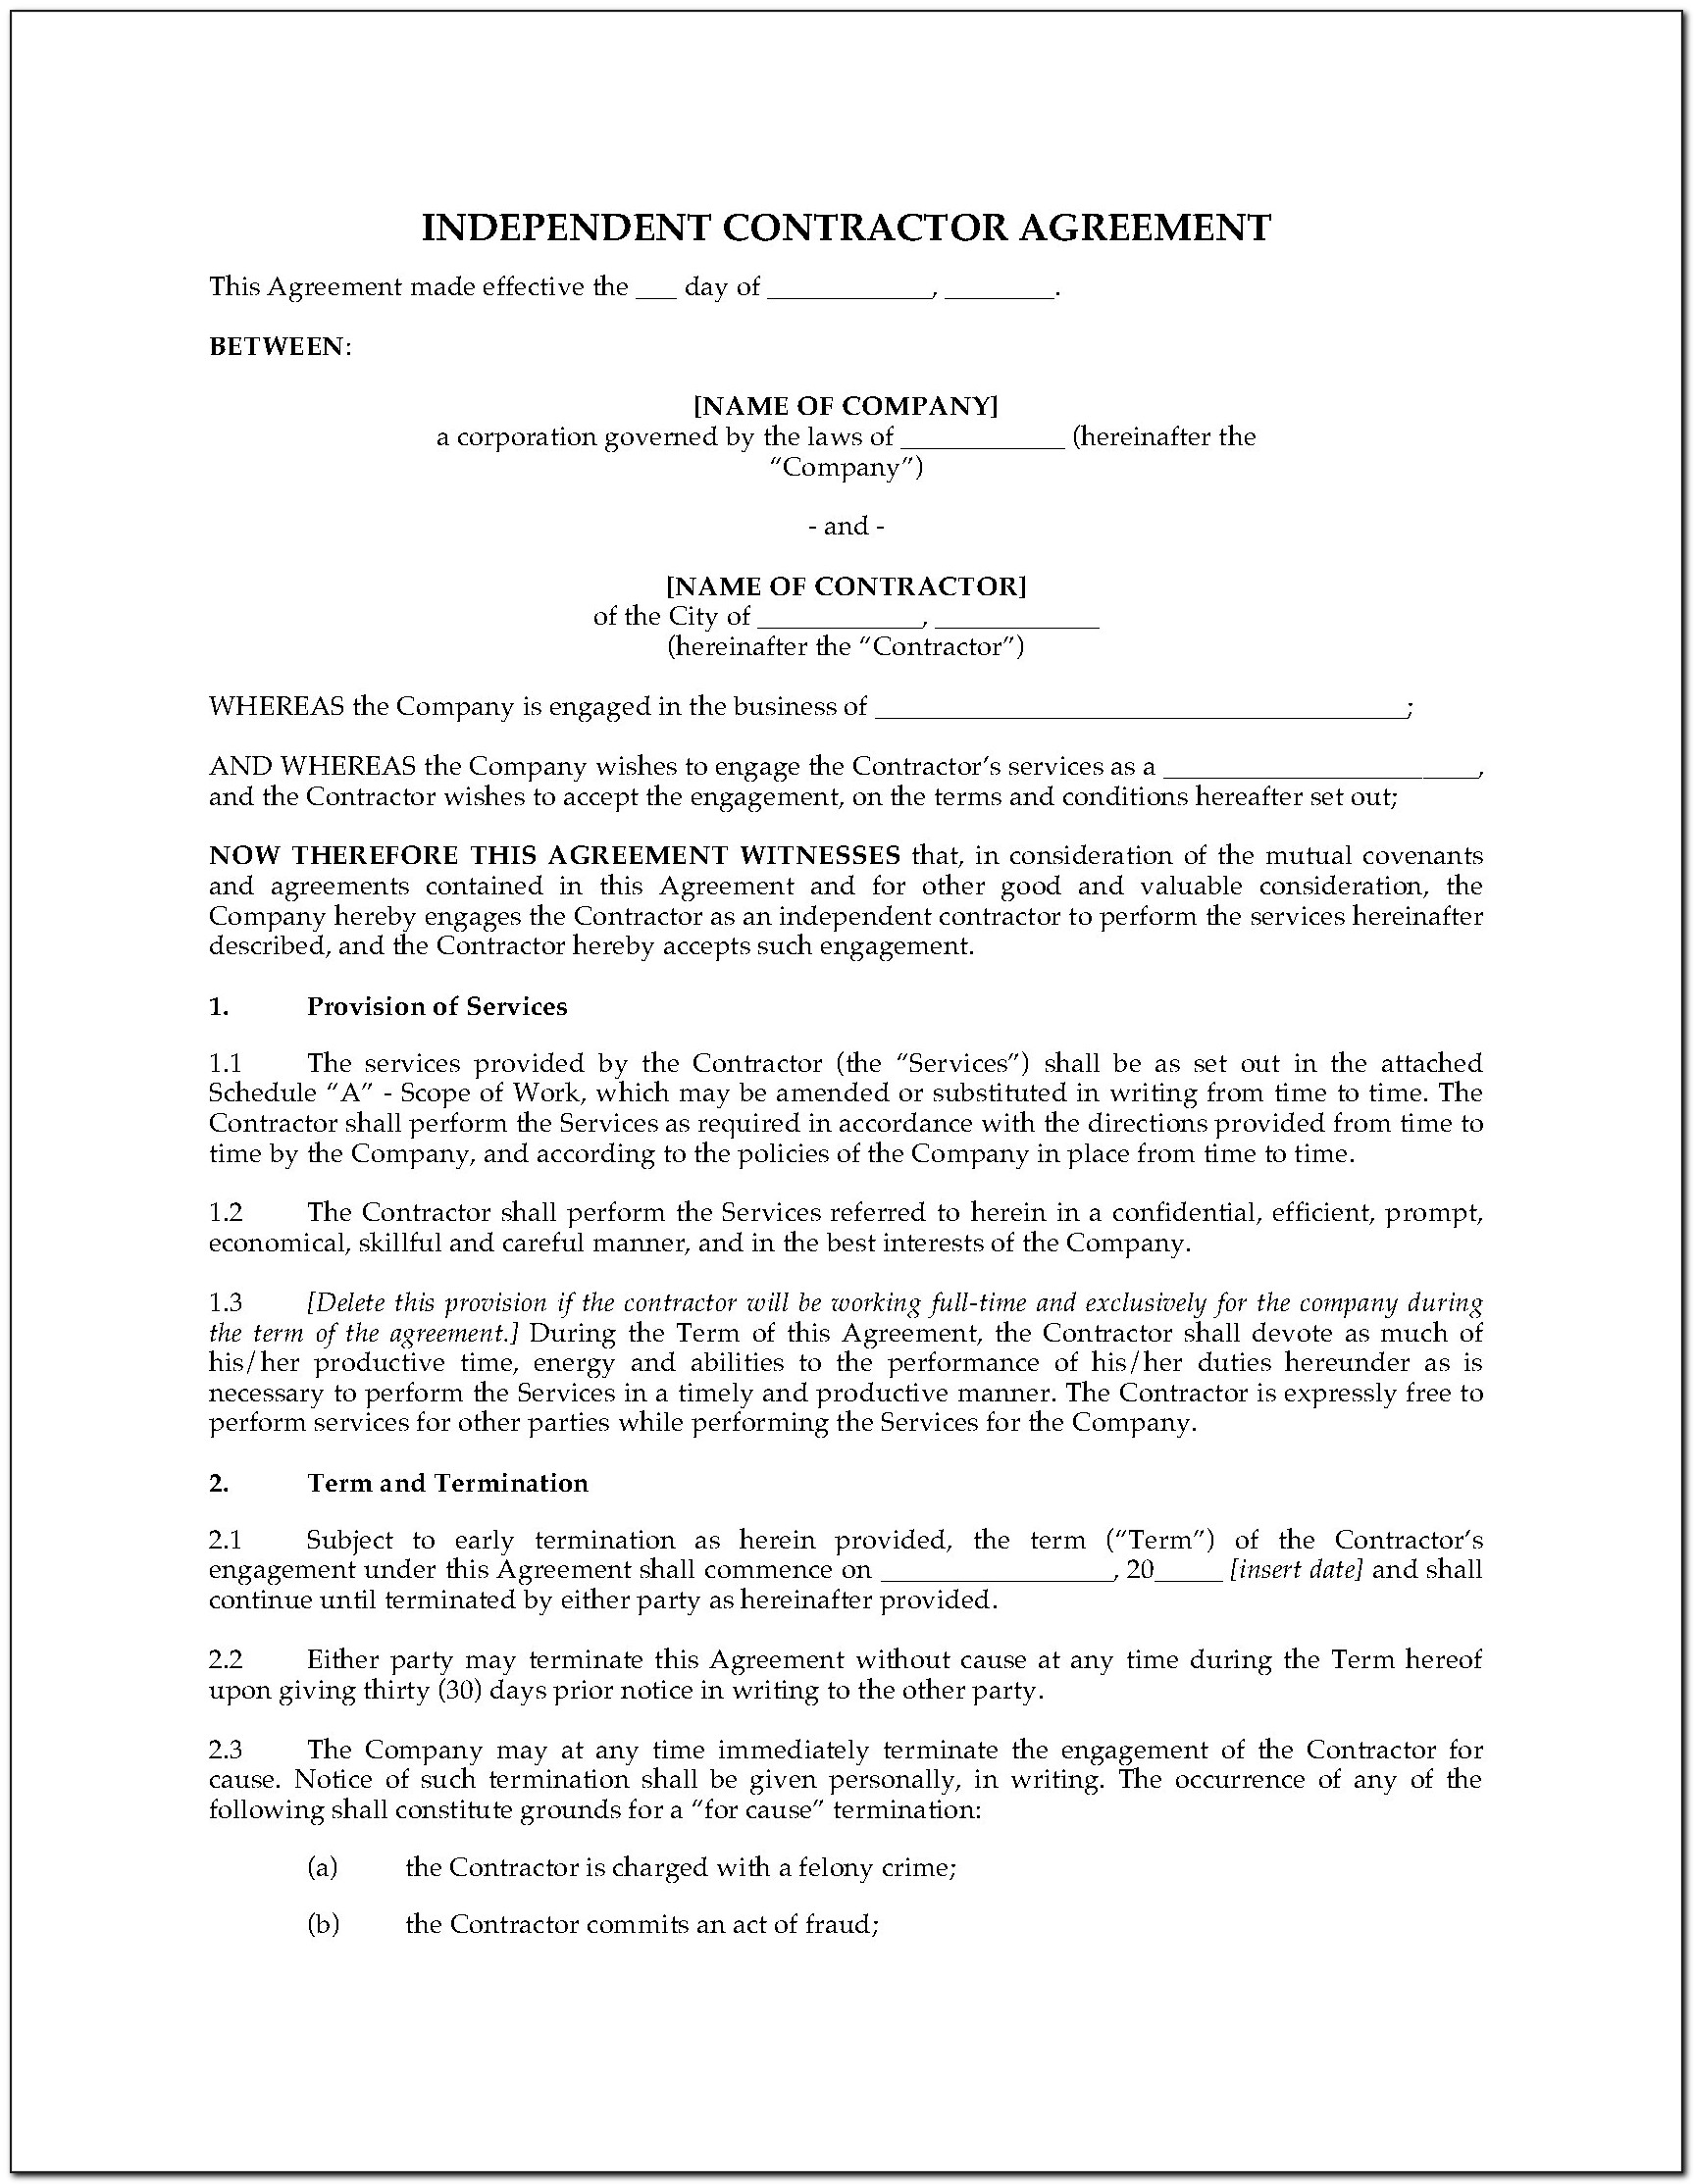 Independent Contractor Agreement Template Free Nz